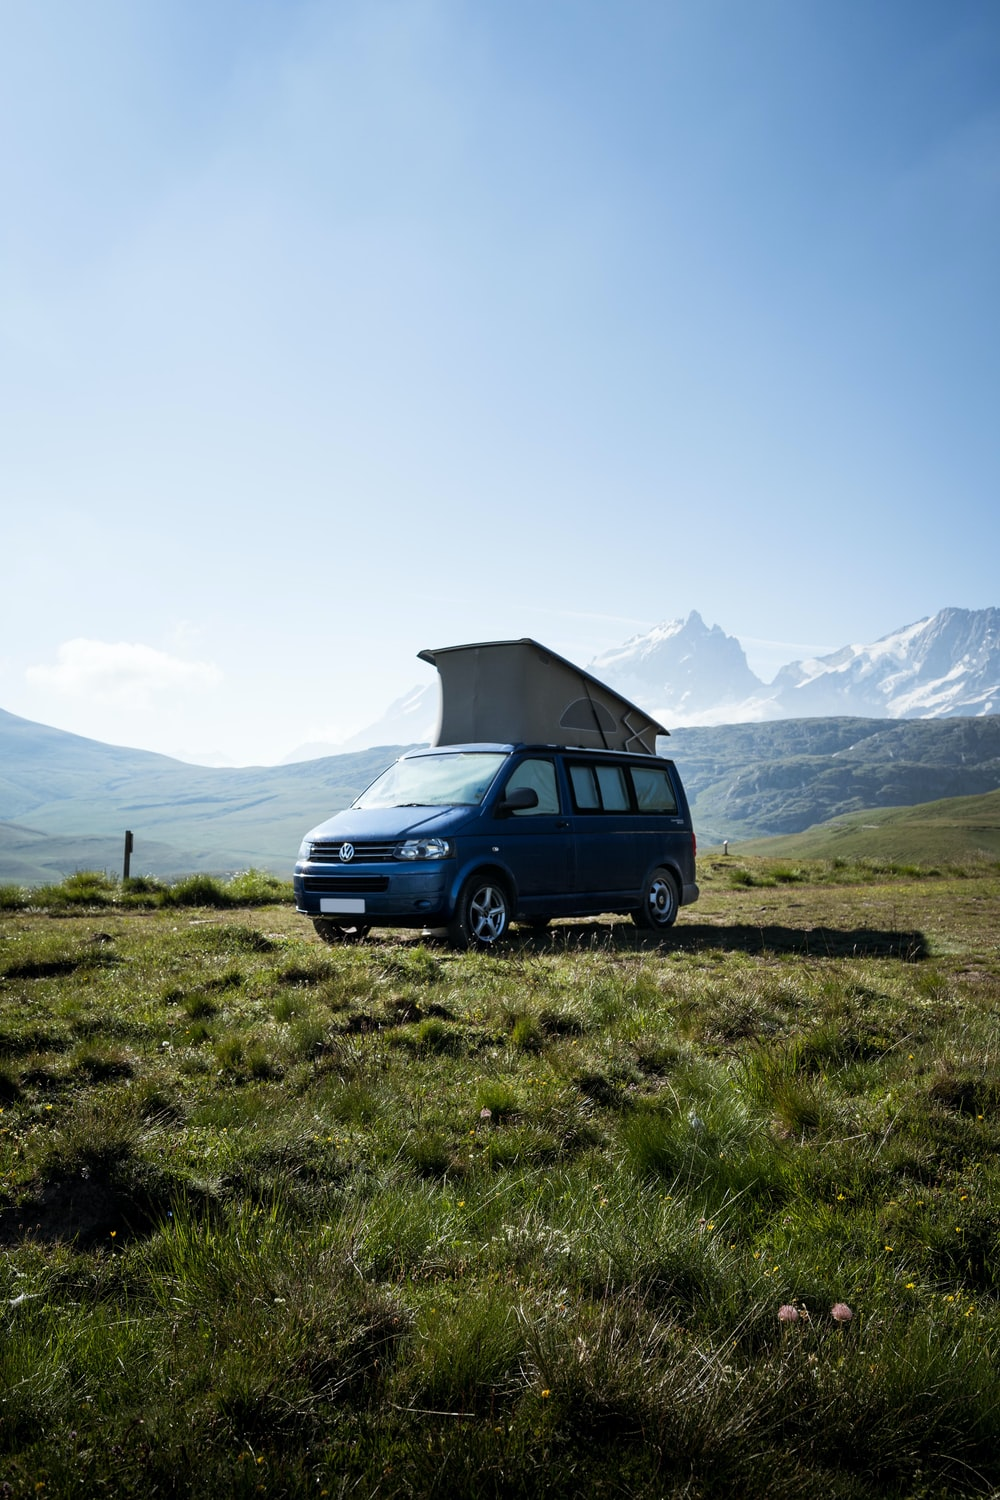 blue Volkswagen Transporter van on green grass field